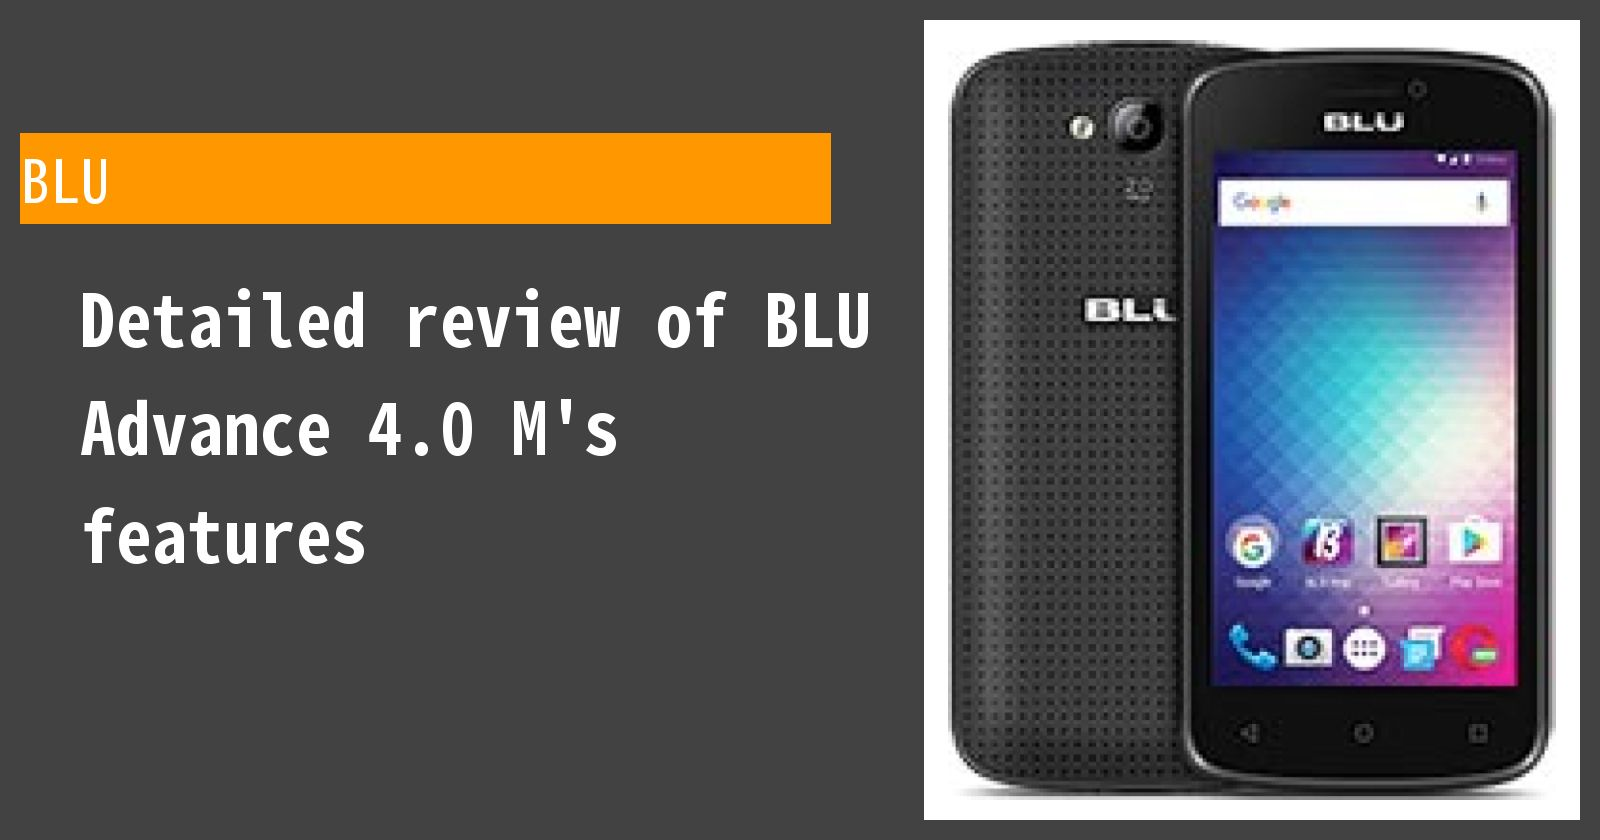 Detailed review of BLU Advance 4.0 M's features